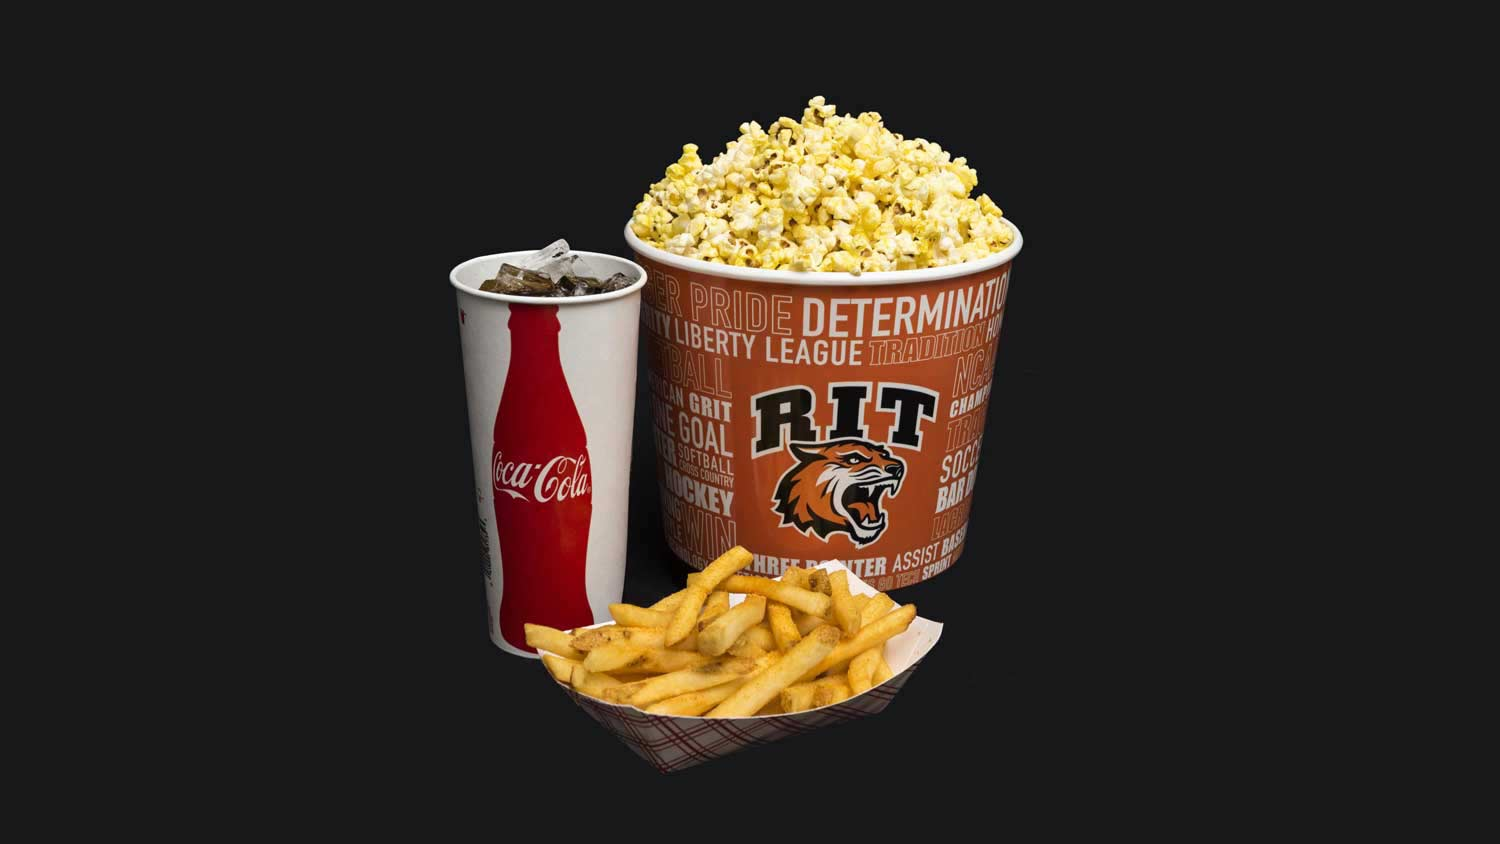 Fries, popcorn, and a fountain drink on a black background